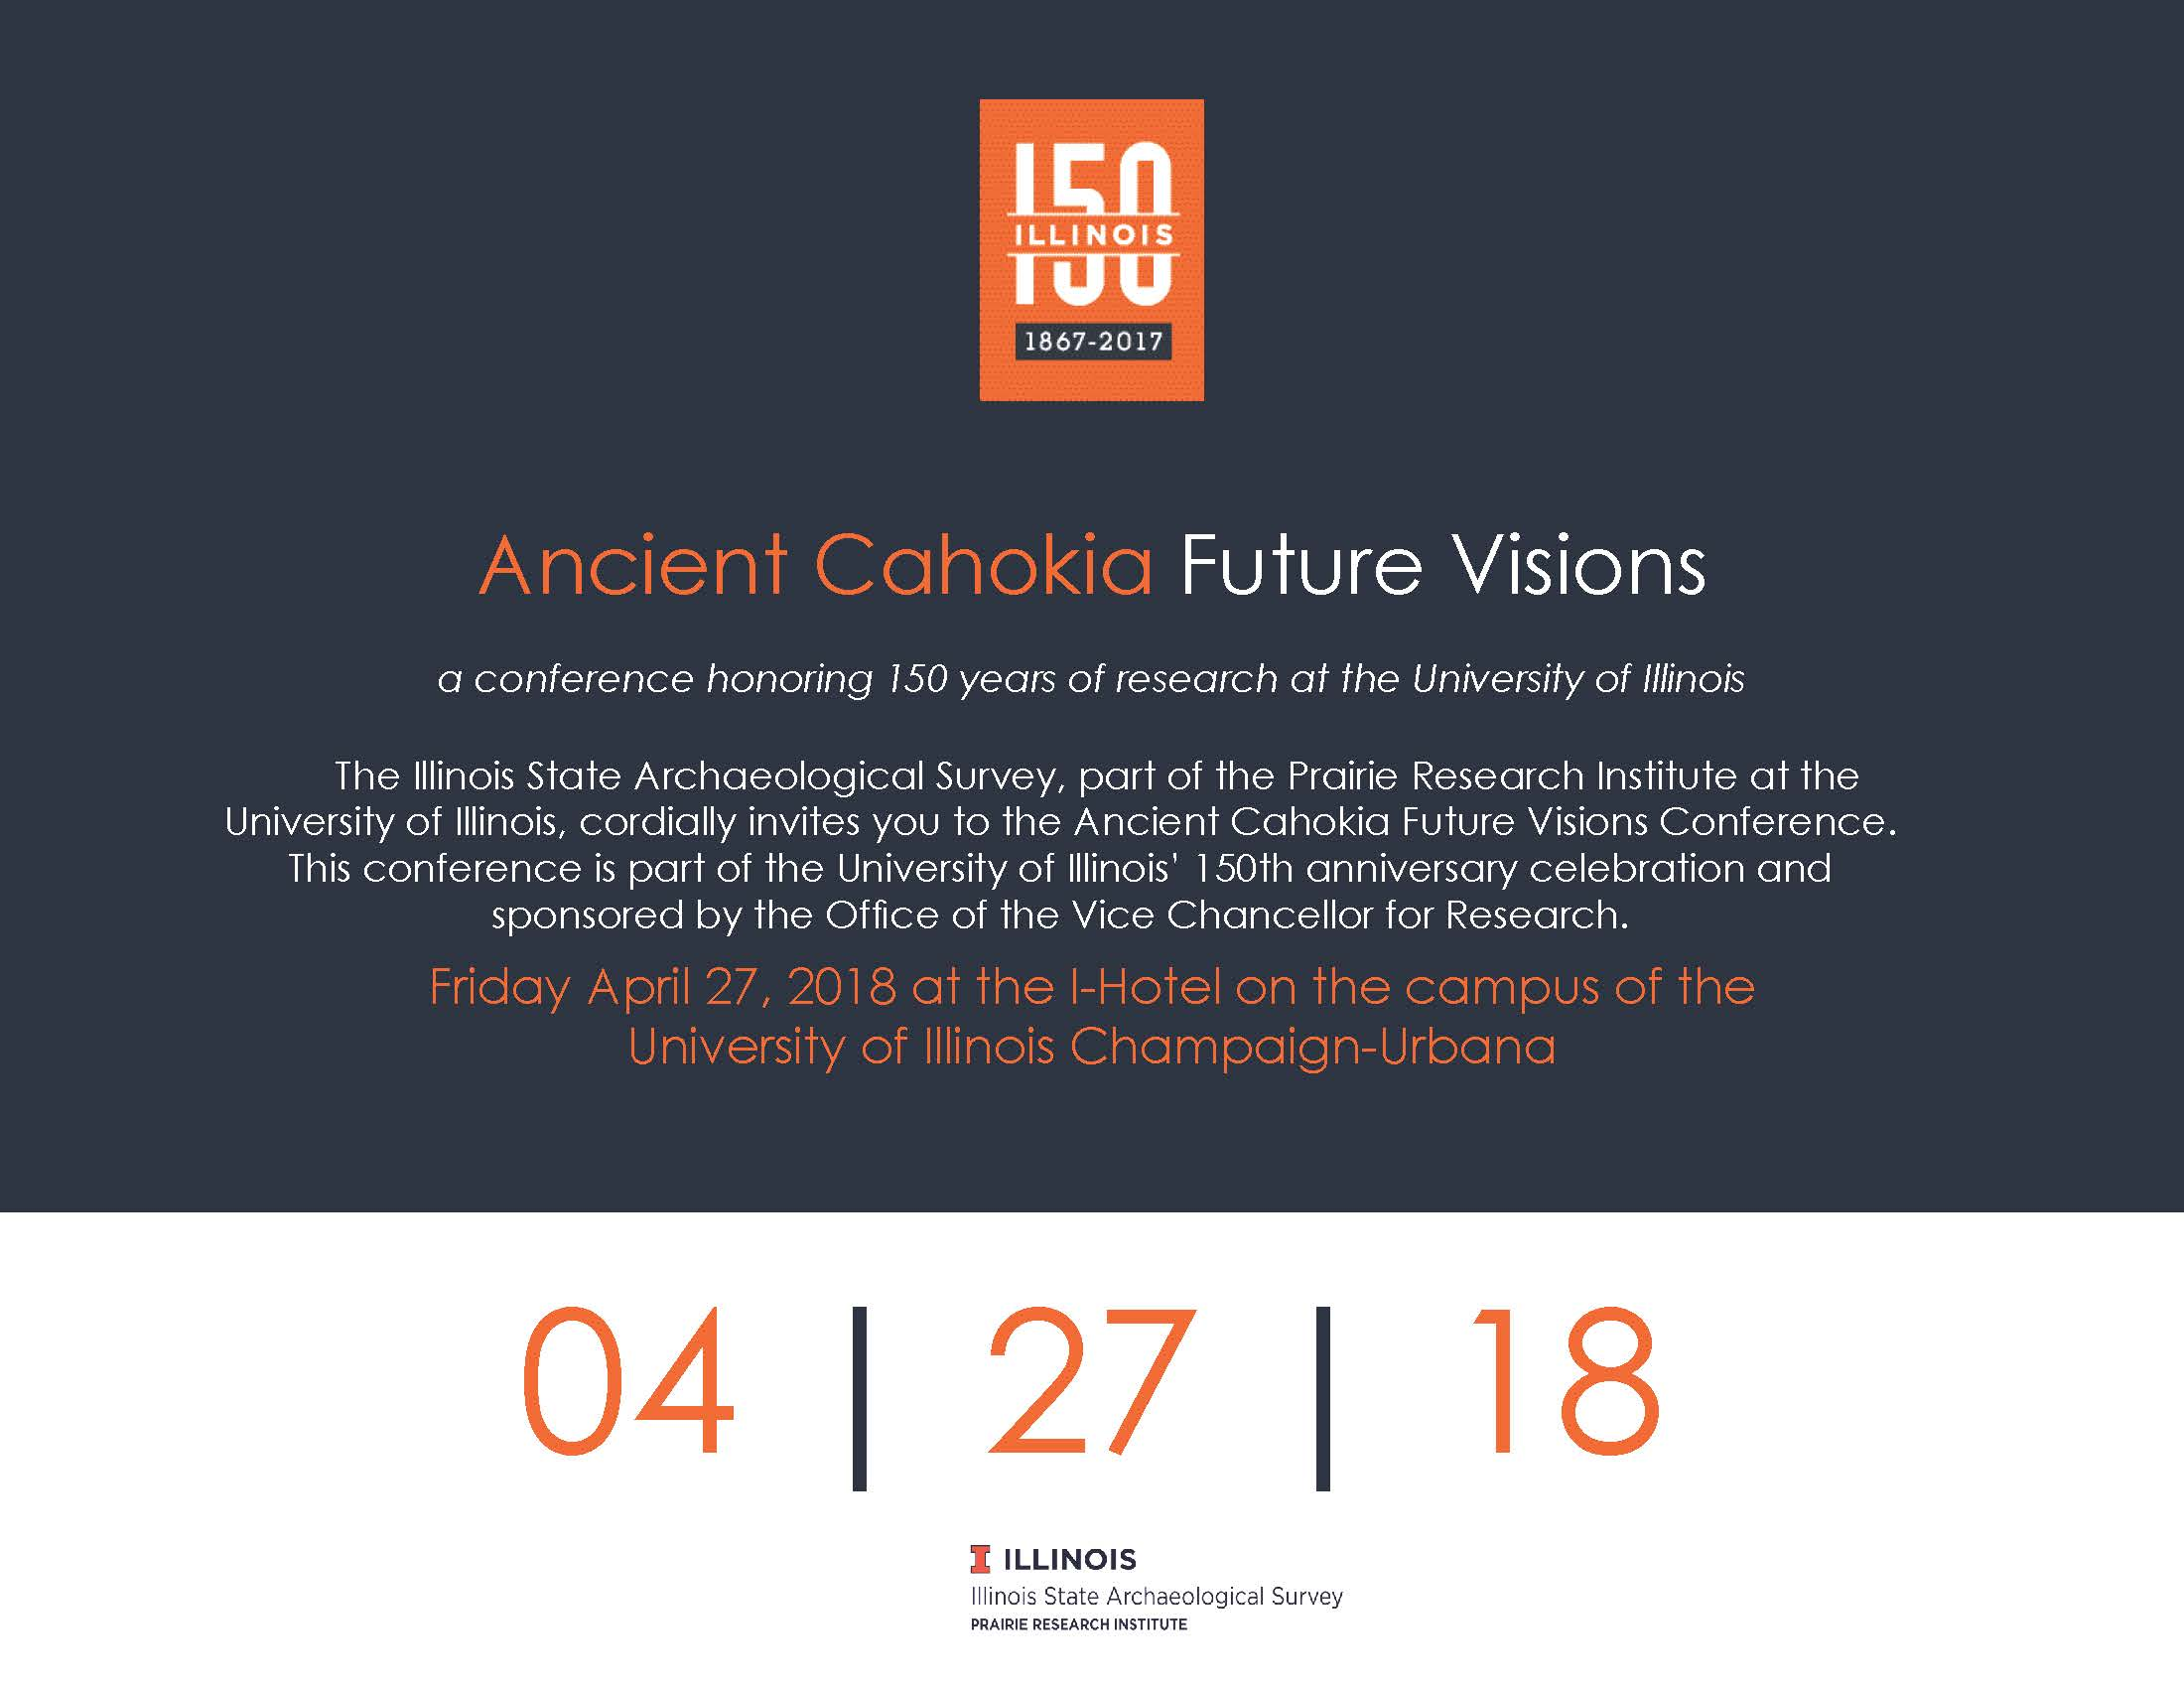 Ancient Cahokia Future Visions Save-the-Date